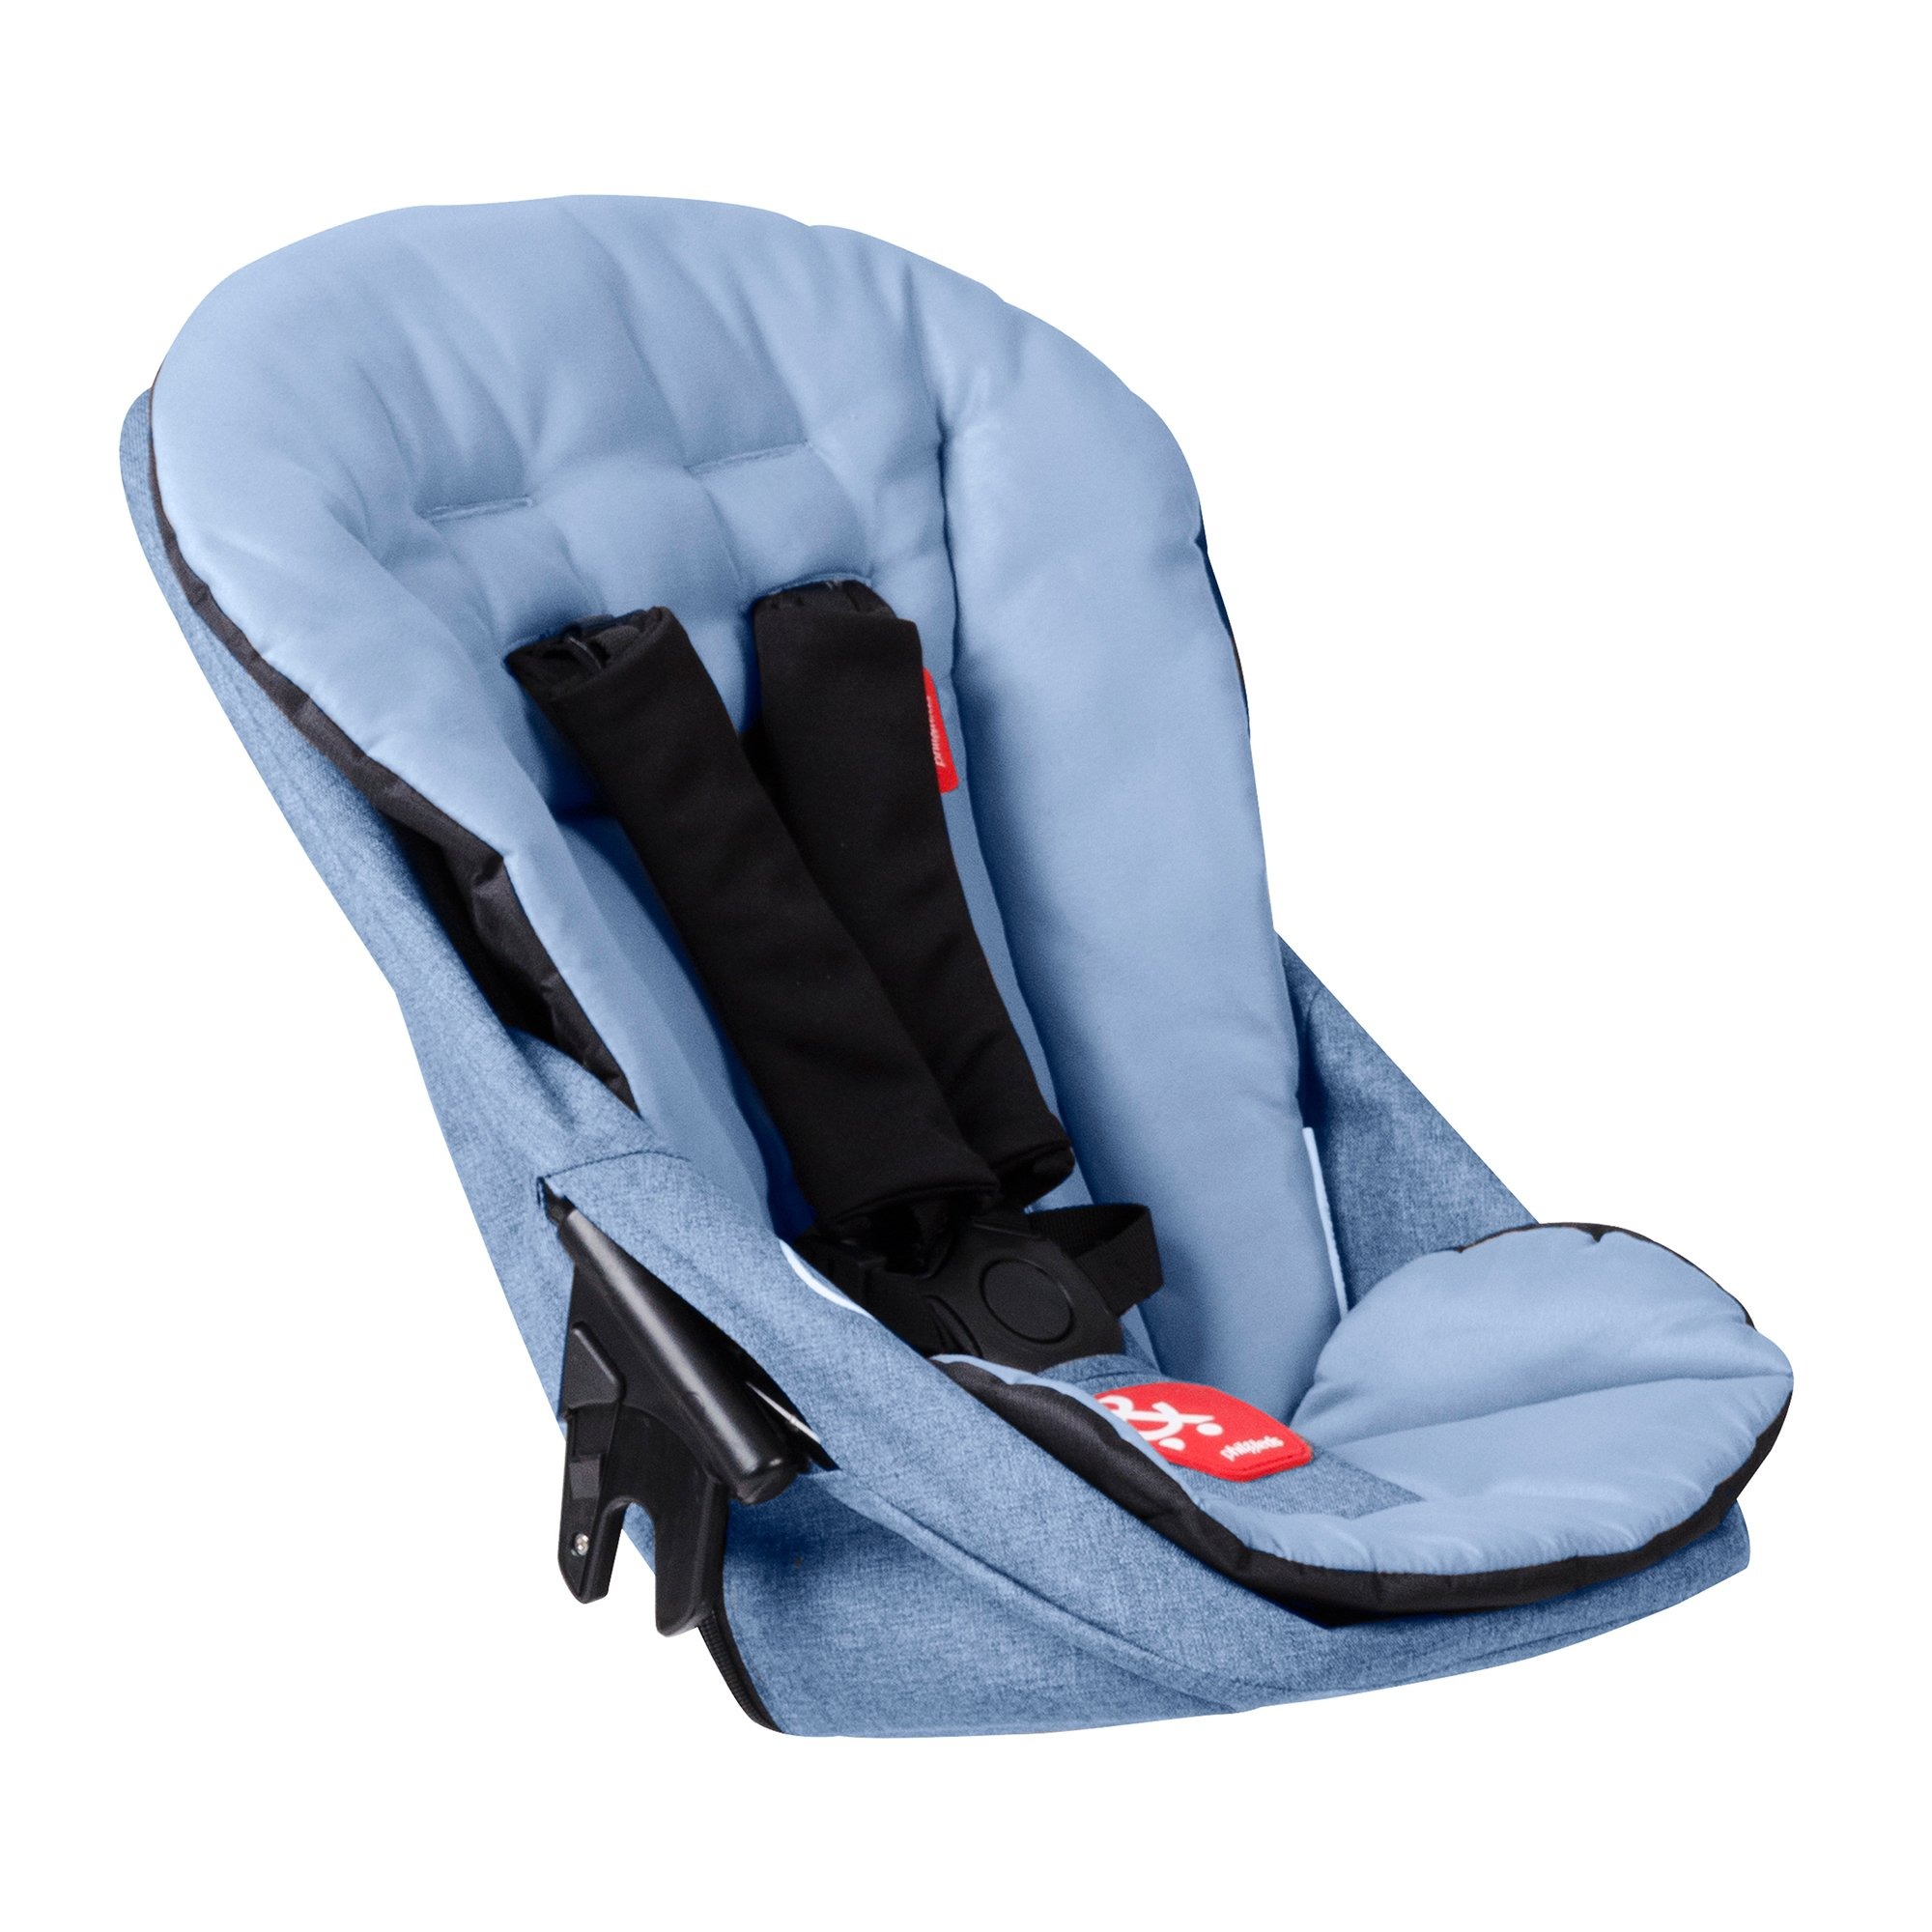 phil&teds Dash Second Seat, Blue Marl